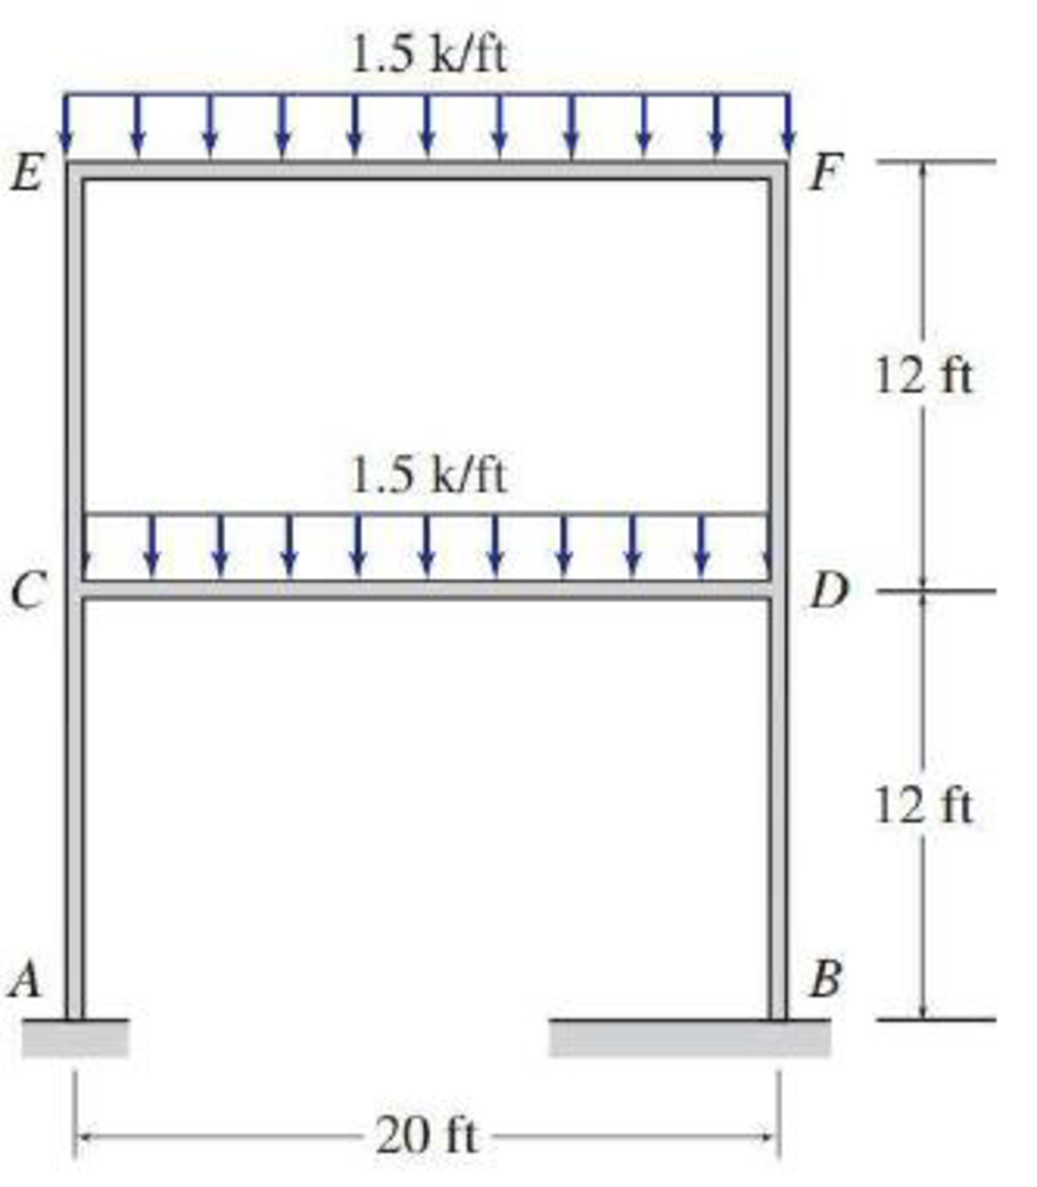 Chapter 12, Problem 2P, 12.1 through 12.5 Draw the approximate shear and bending moment diagrams for the girders of the